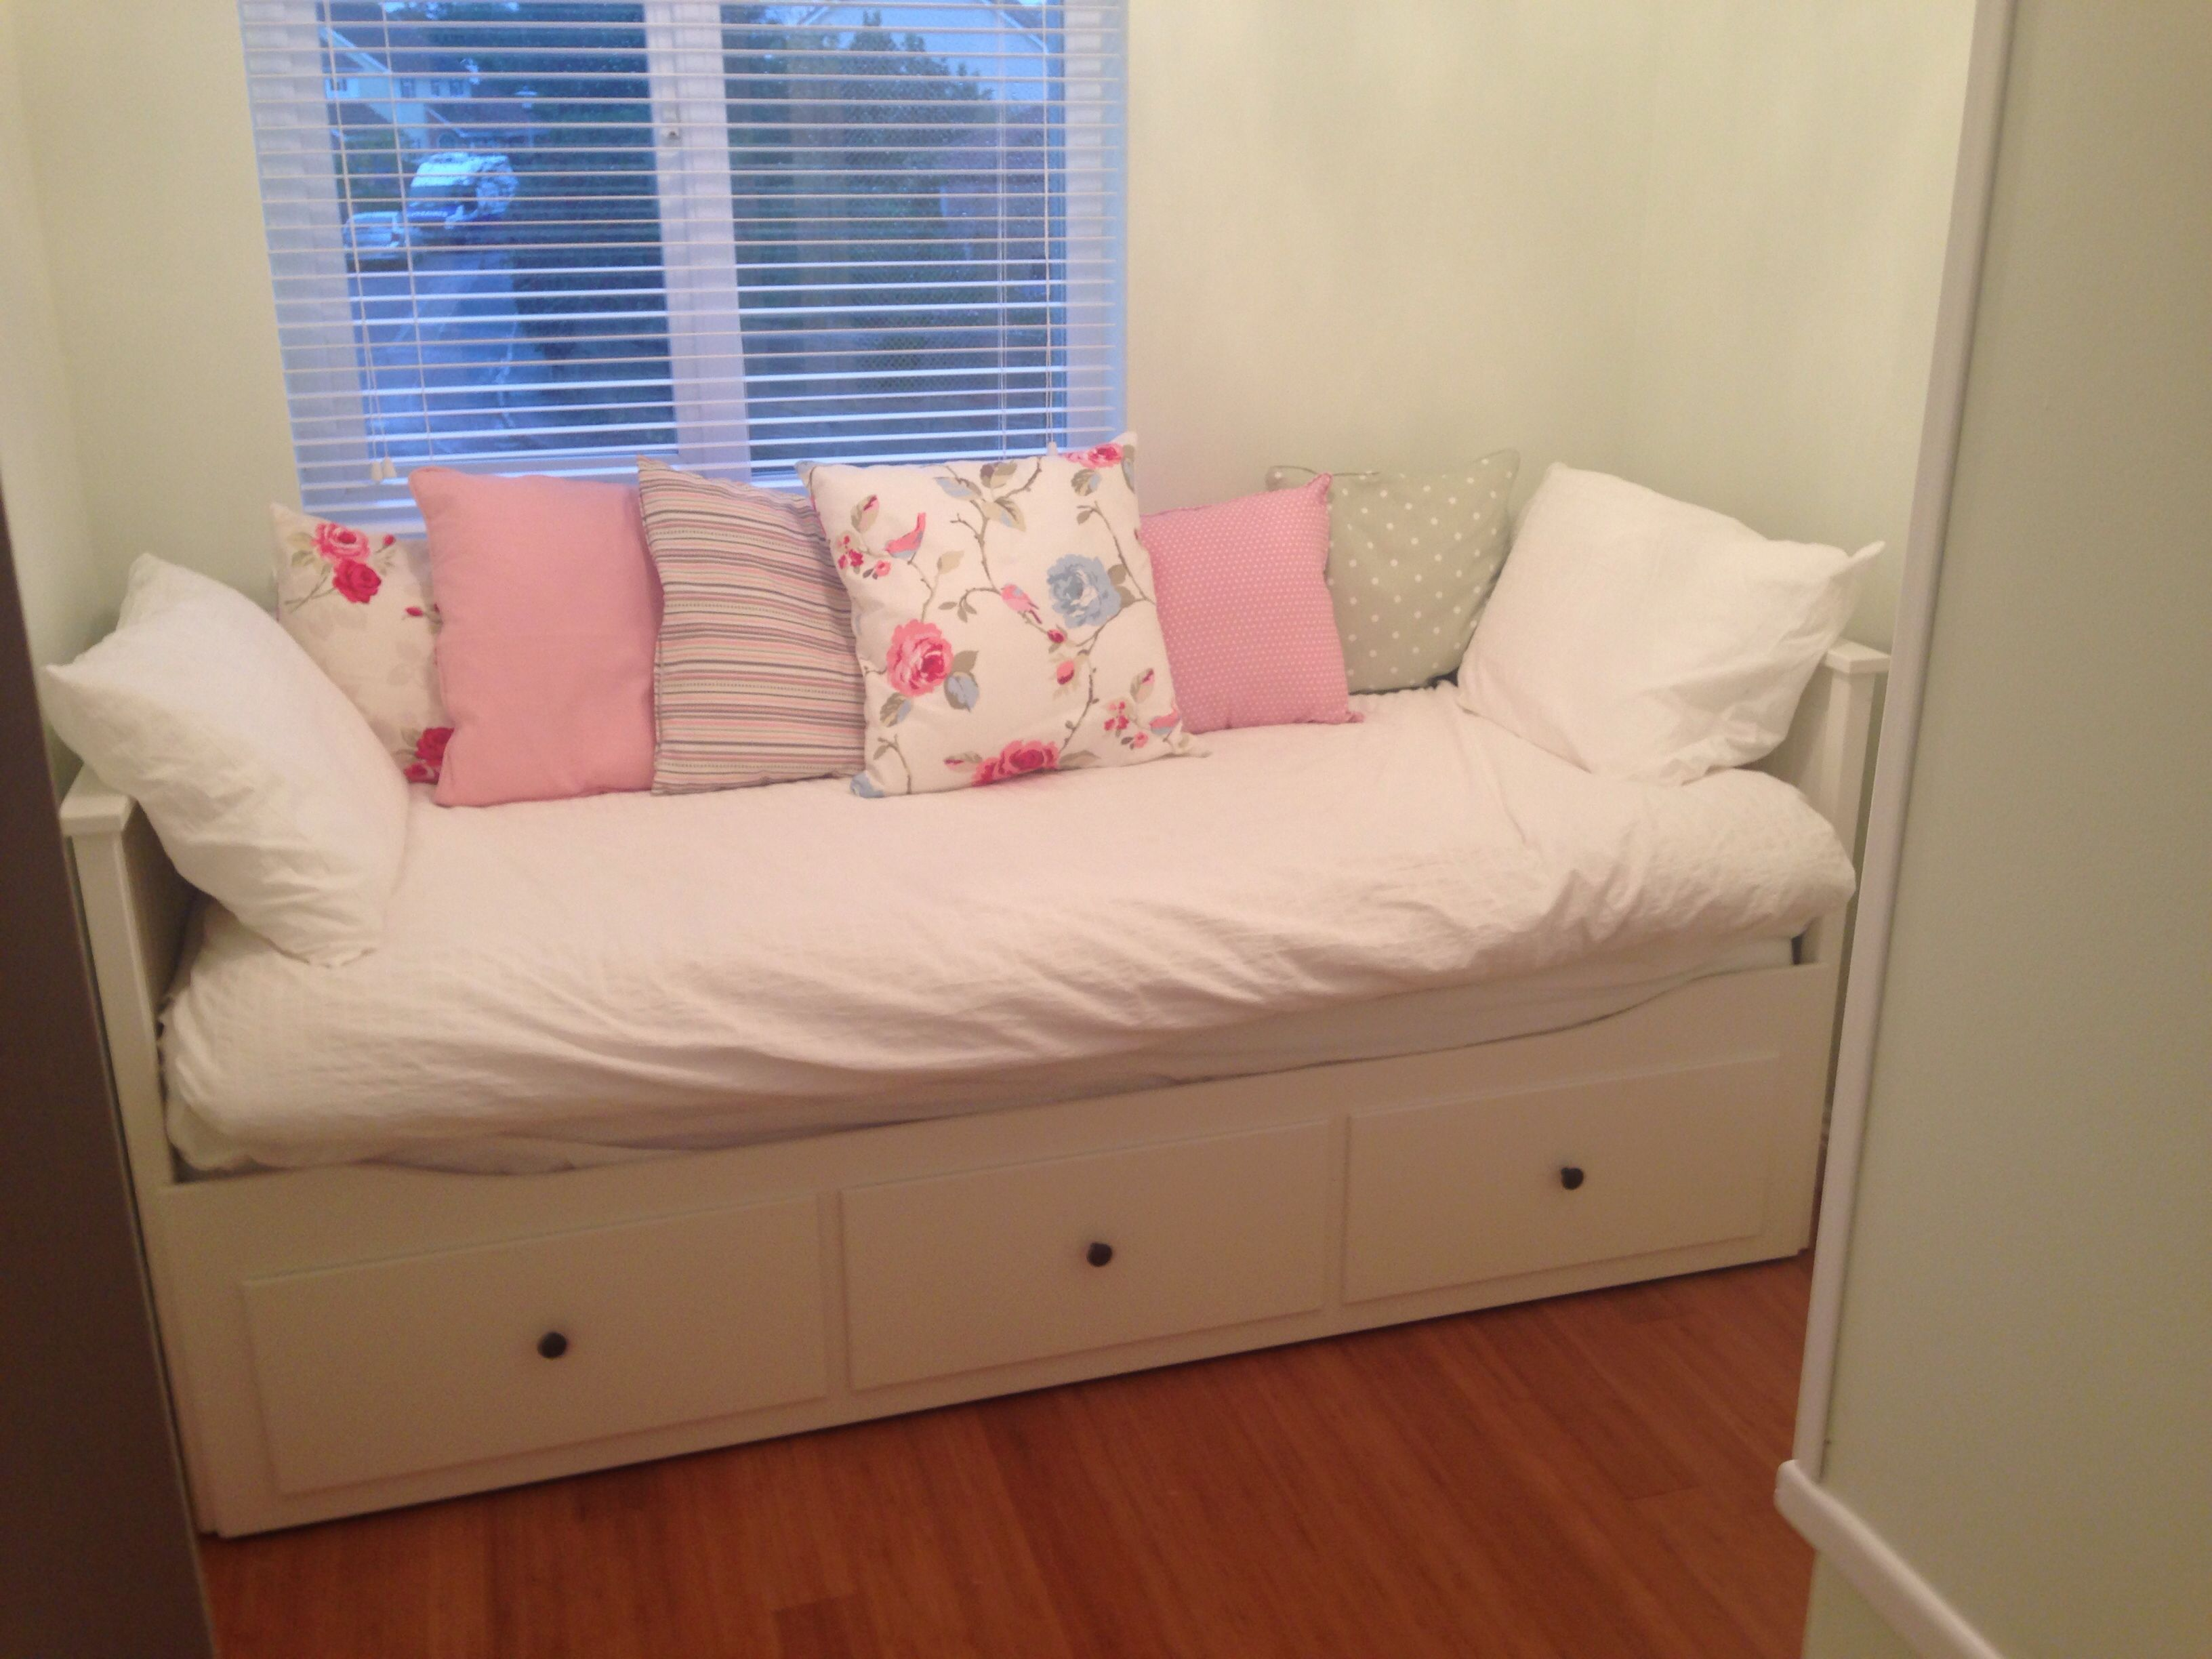 Beds For Small Rooms Ikea Part - 47: IKEA Hemnes Day Bed Now In Our Small Box Room Come Snug! So In Love